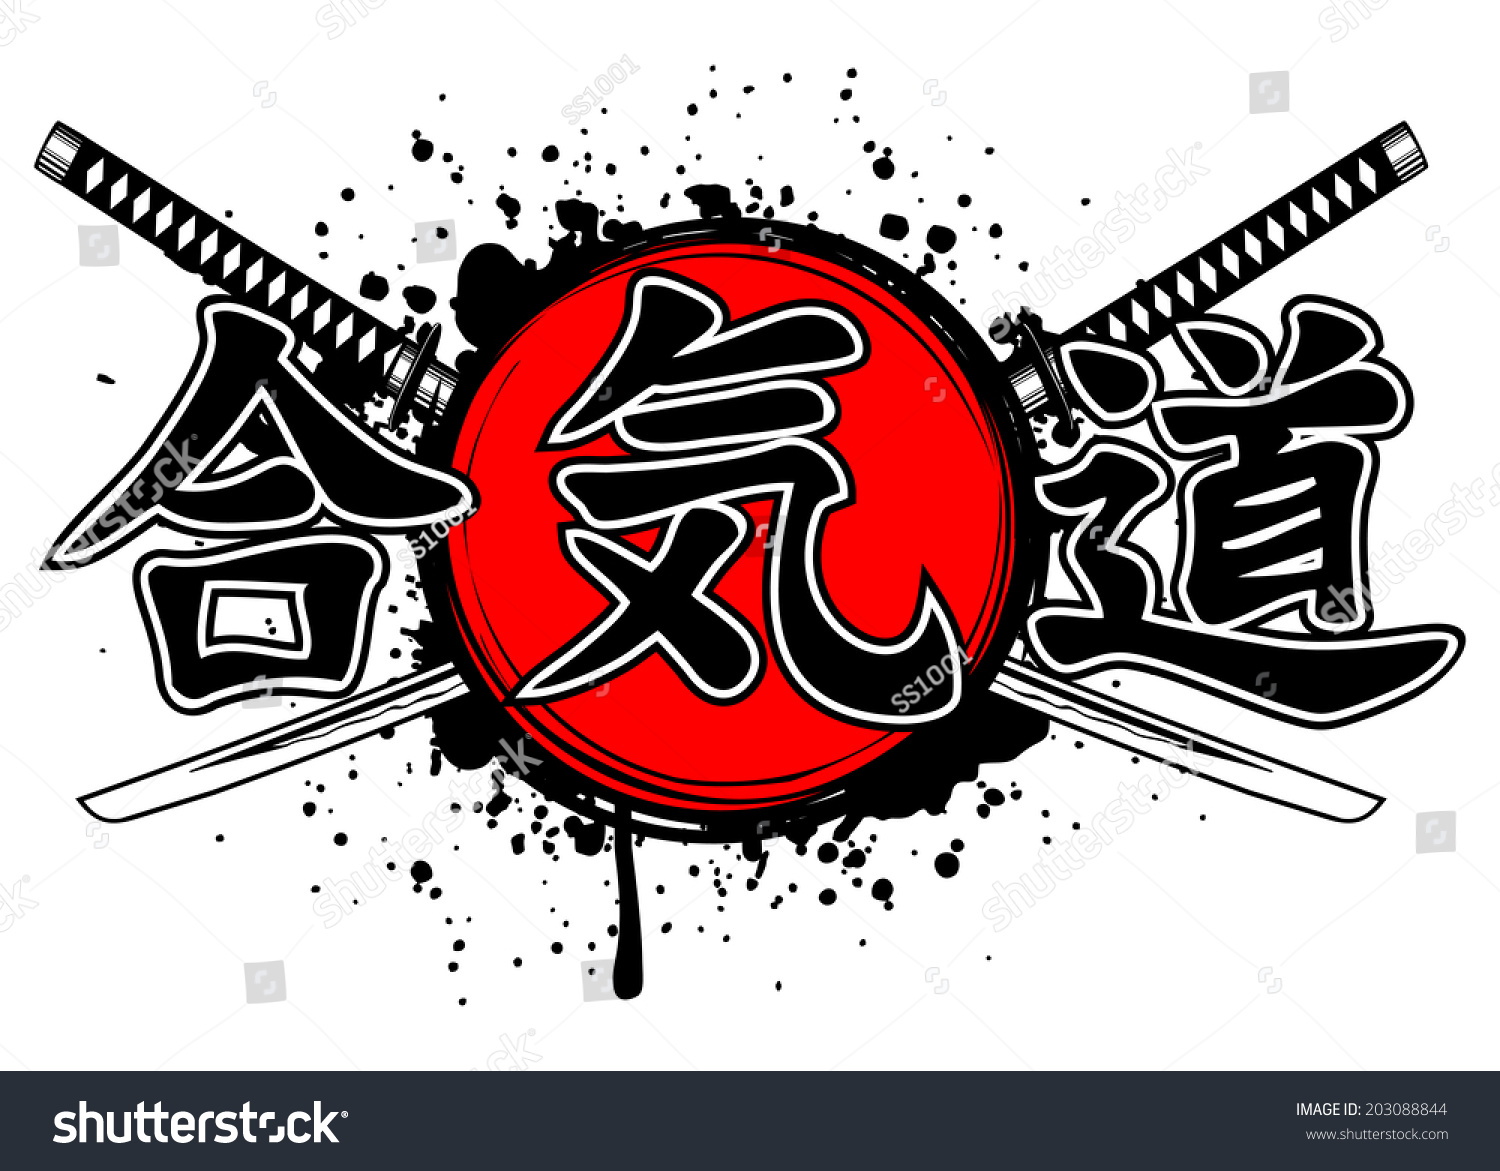 abstract vector illustration crossed samurai swords stock vector 203088844 shutterstock. Black Bedroom Furniture Sets. Home Design Ideas